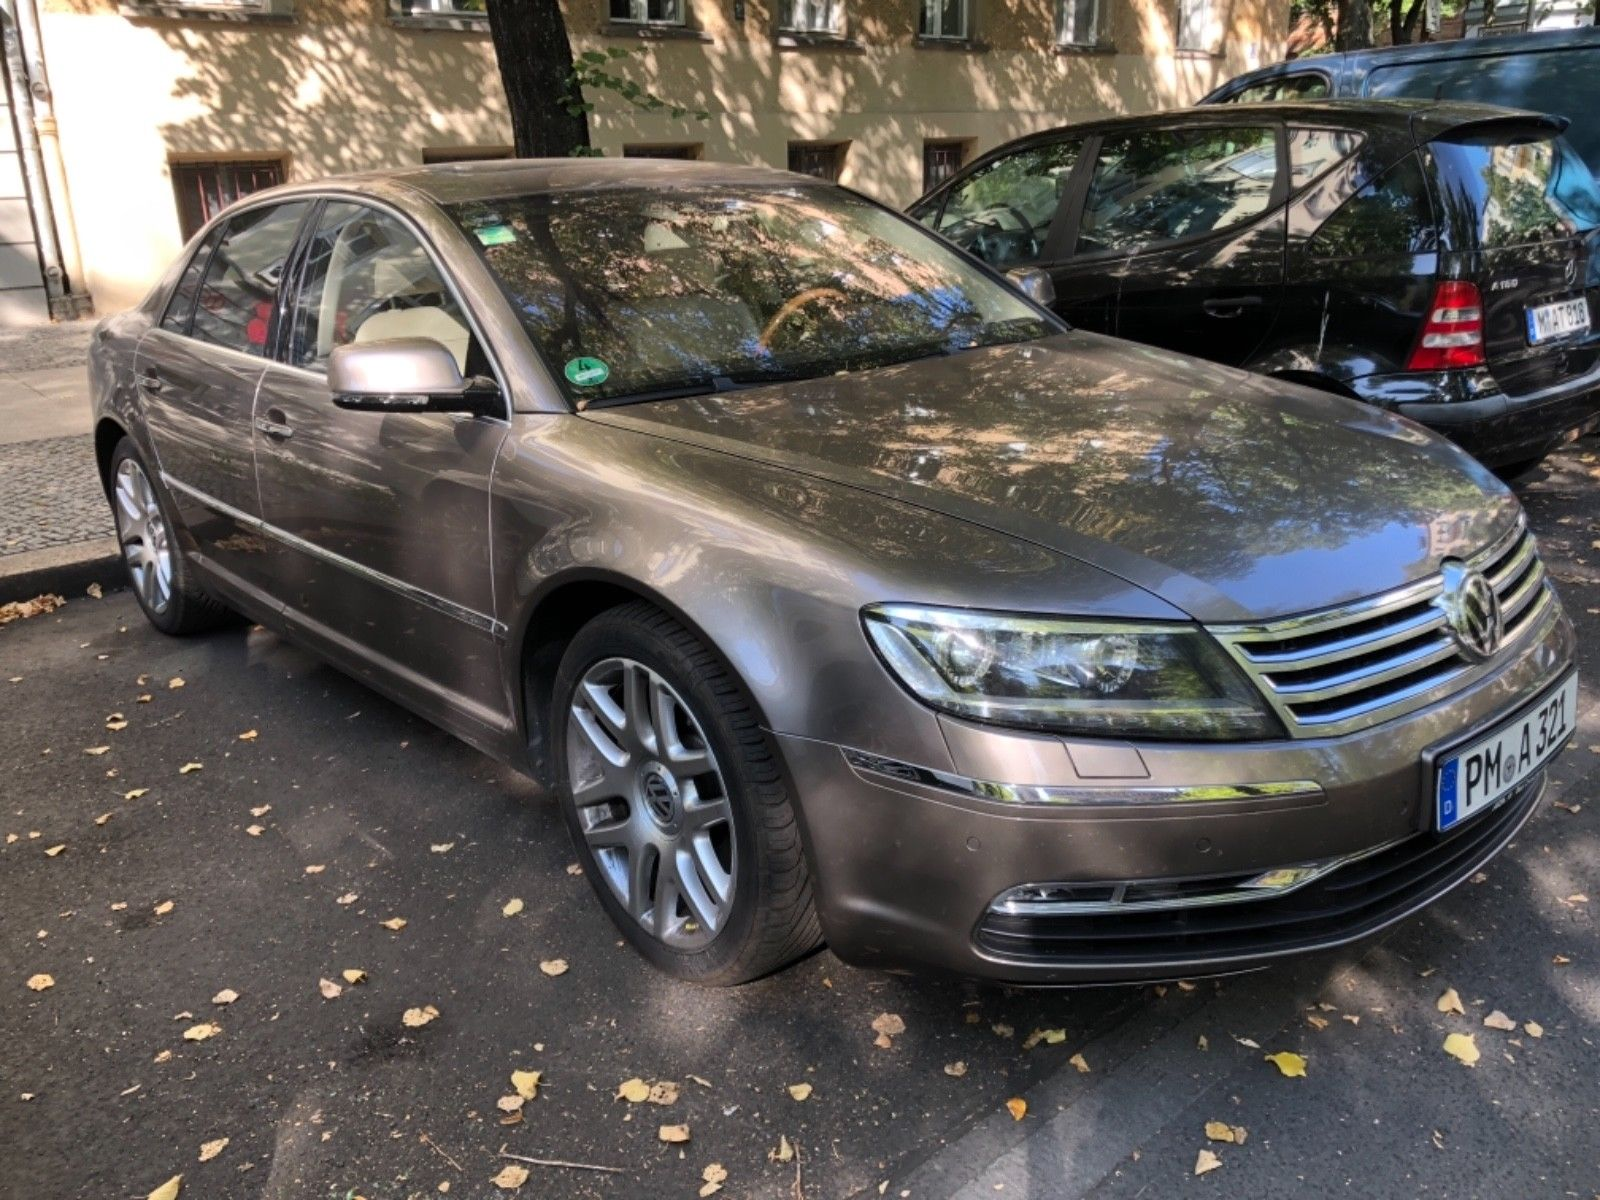 VW Phaeton 2011 3.0tdi V6 239hp gallery